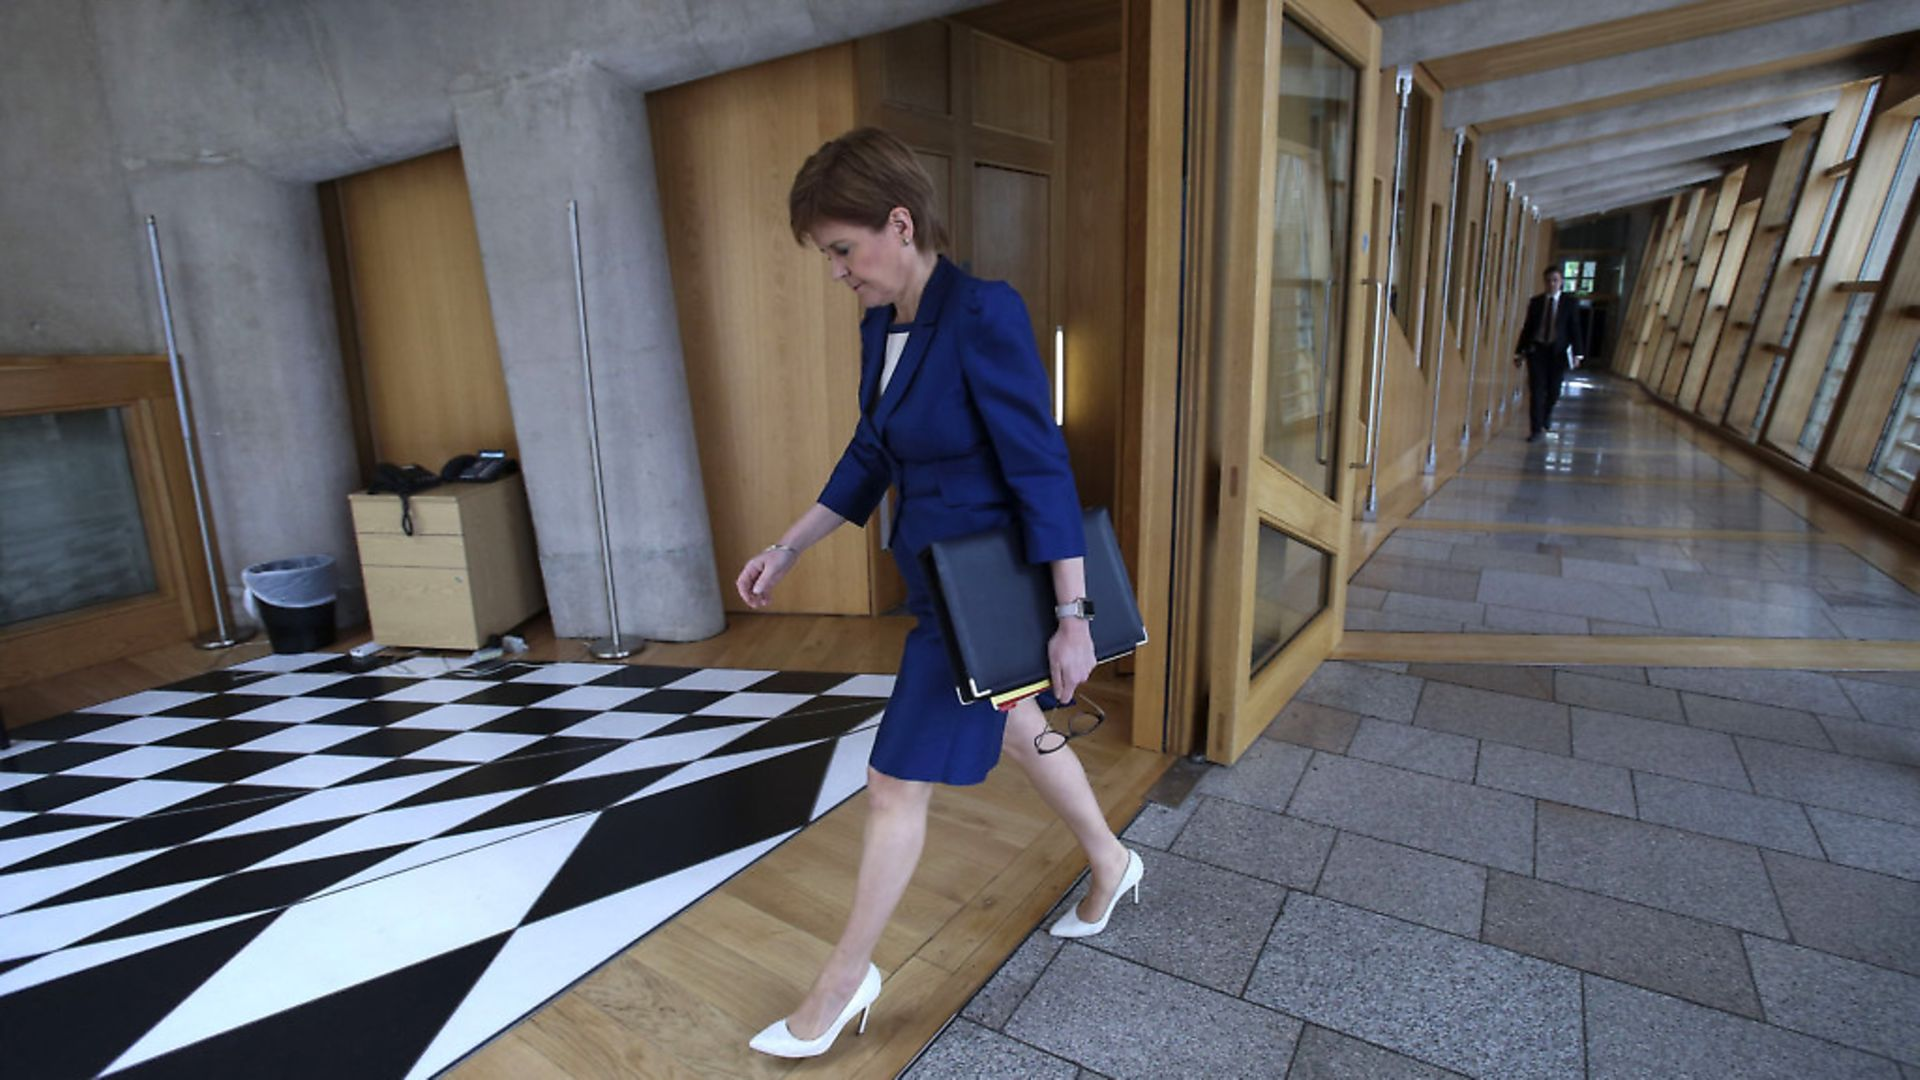 EDINBURGH, SCOTLAND - JUNE 3: Scottish First Minister, Nicola Sturgeon attends First Ministers Questions at Holyrood on June 3, 2020 in Edinburgh, Scotland. (Photo by Fraser Bremner-Pool/Getty Images) - Credit: Getty Images